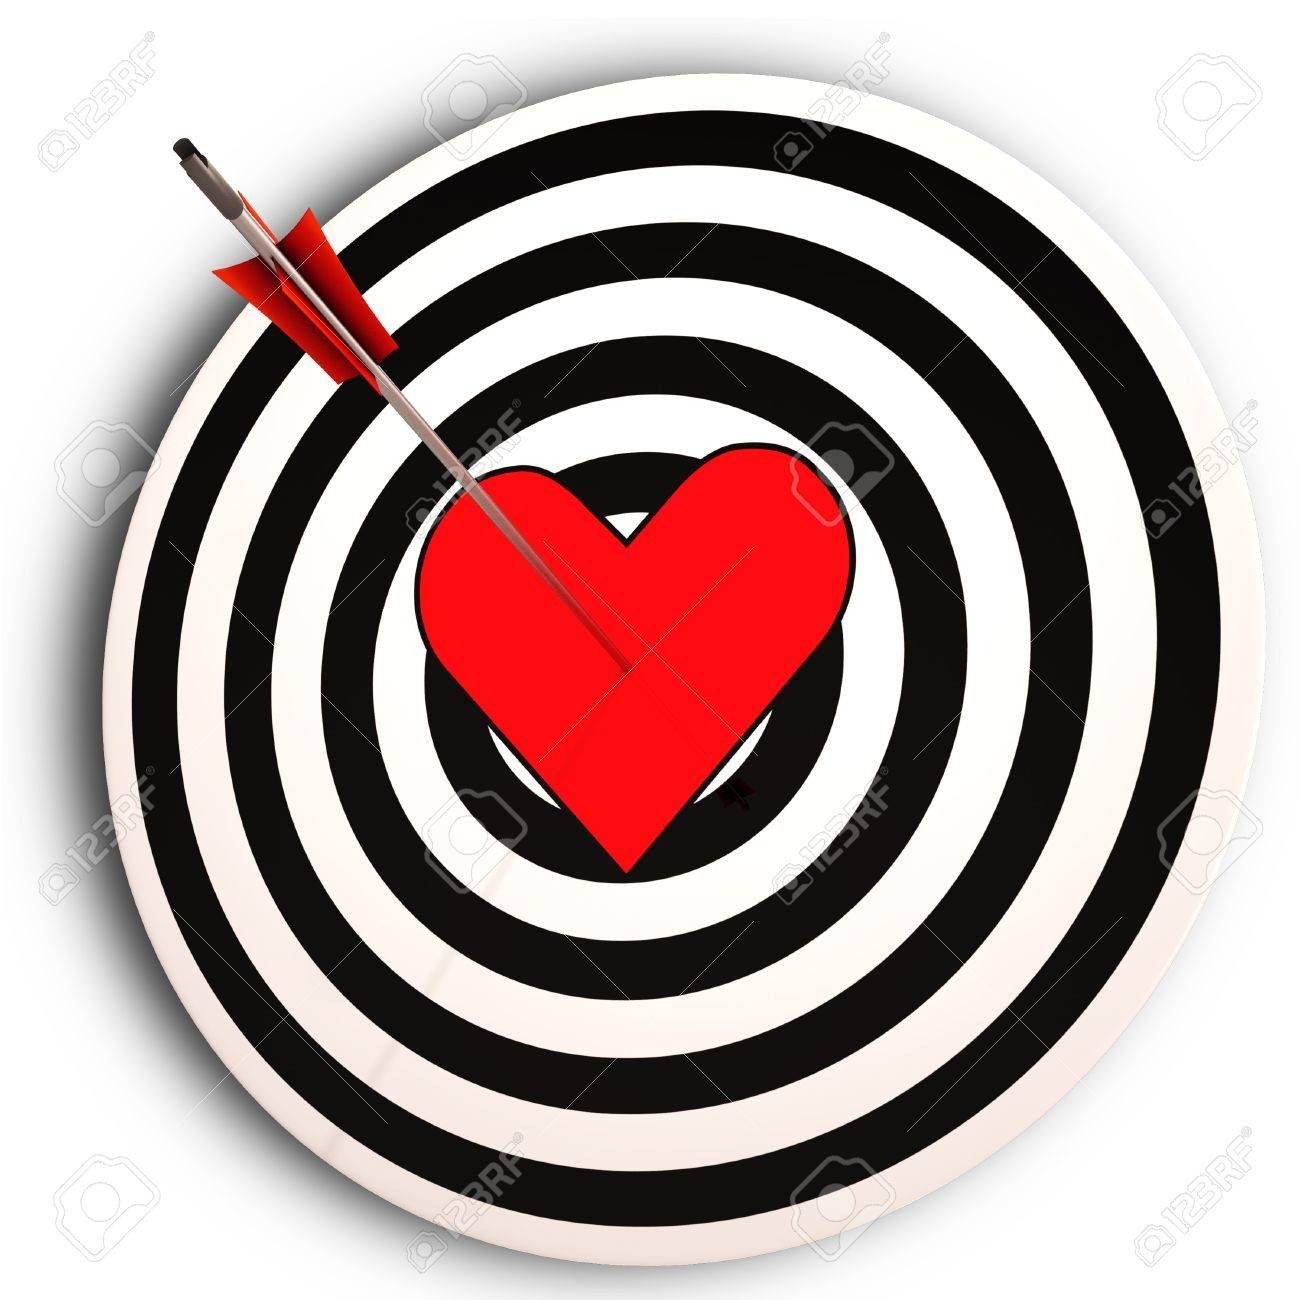 Heart Target Meaning I Love You Achieved